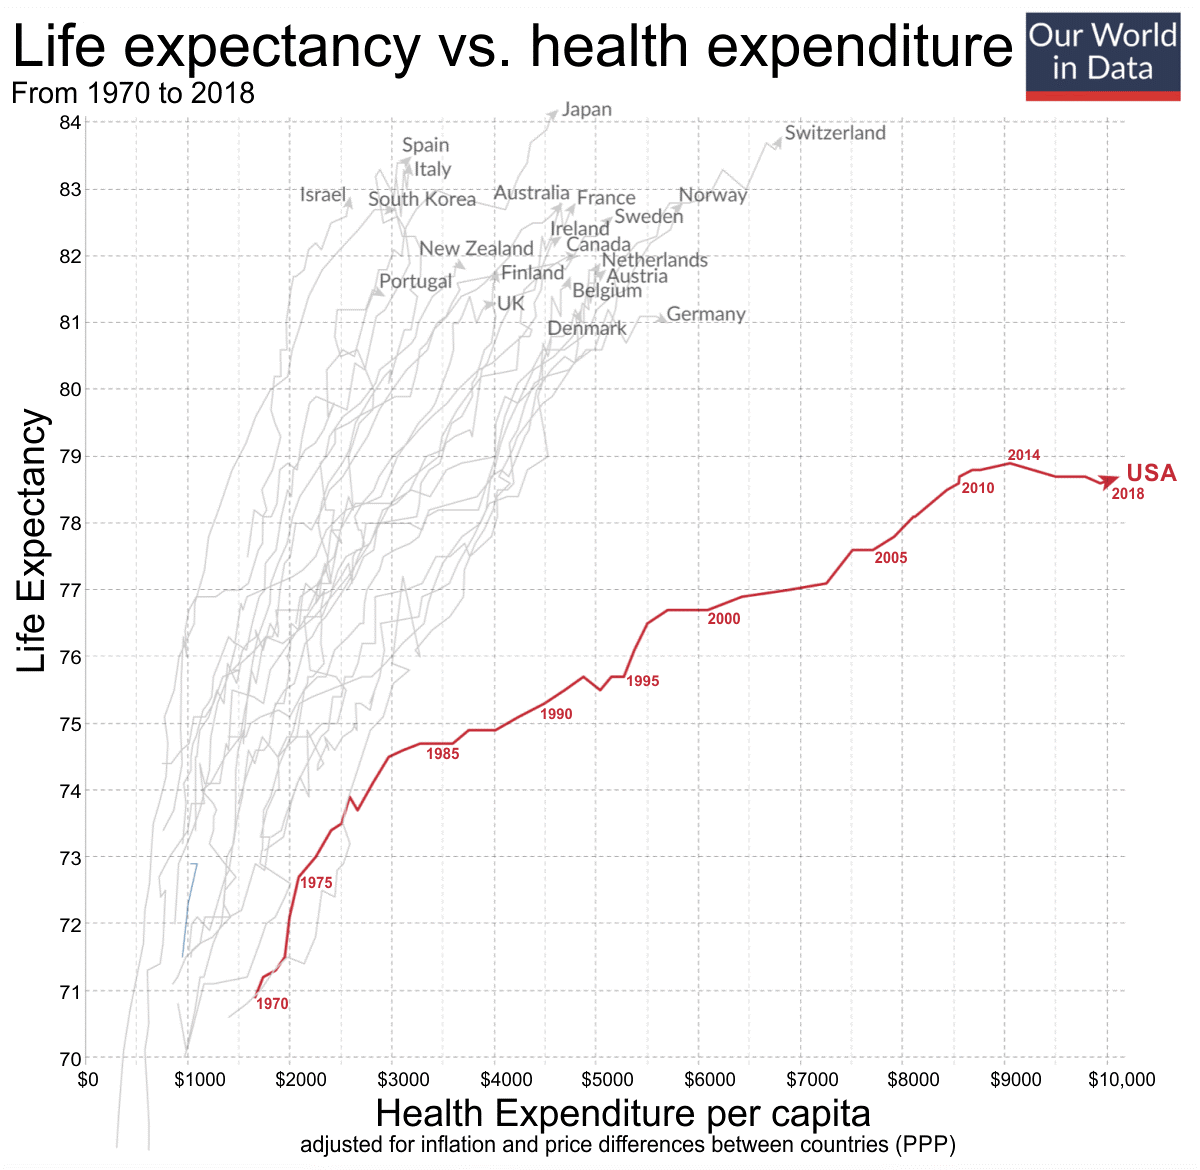 Life Expectancy vs. Health Expenditure